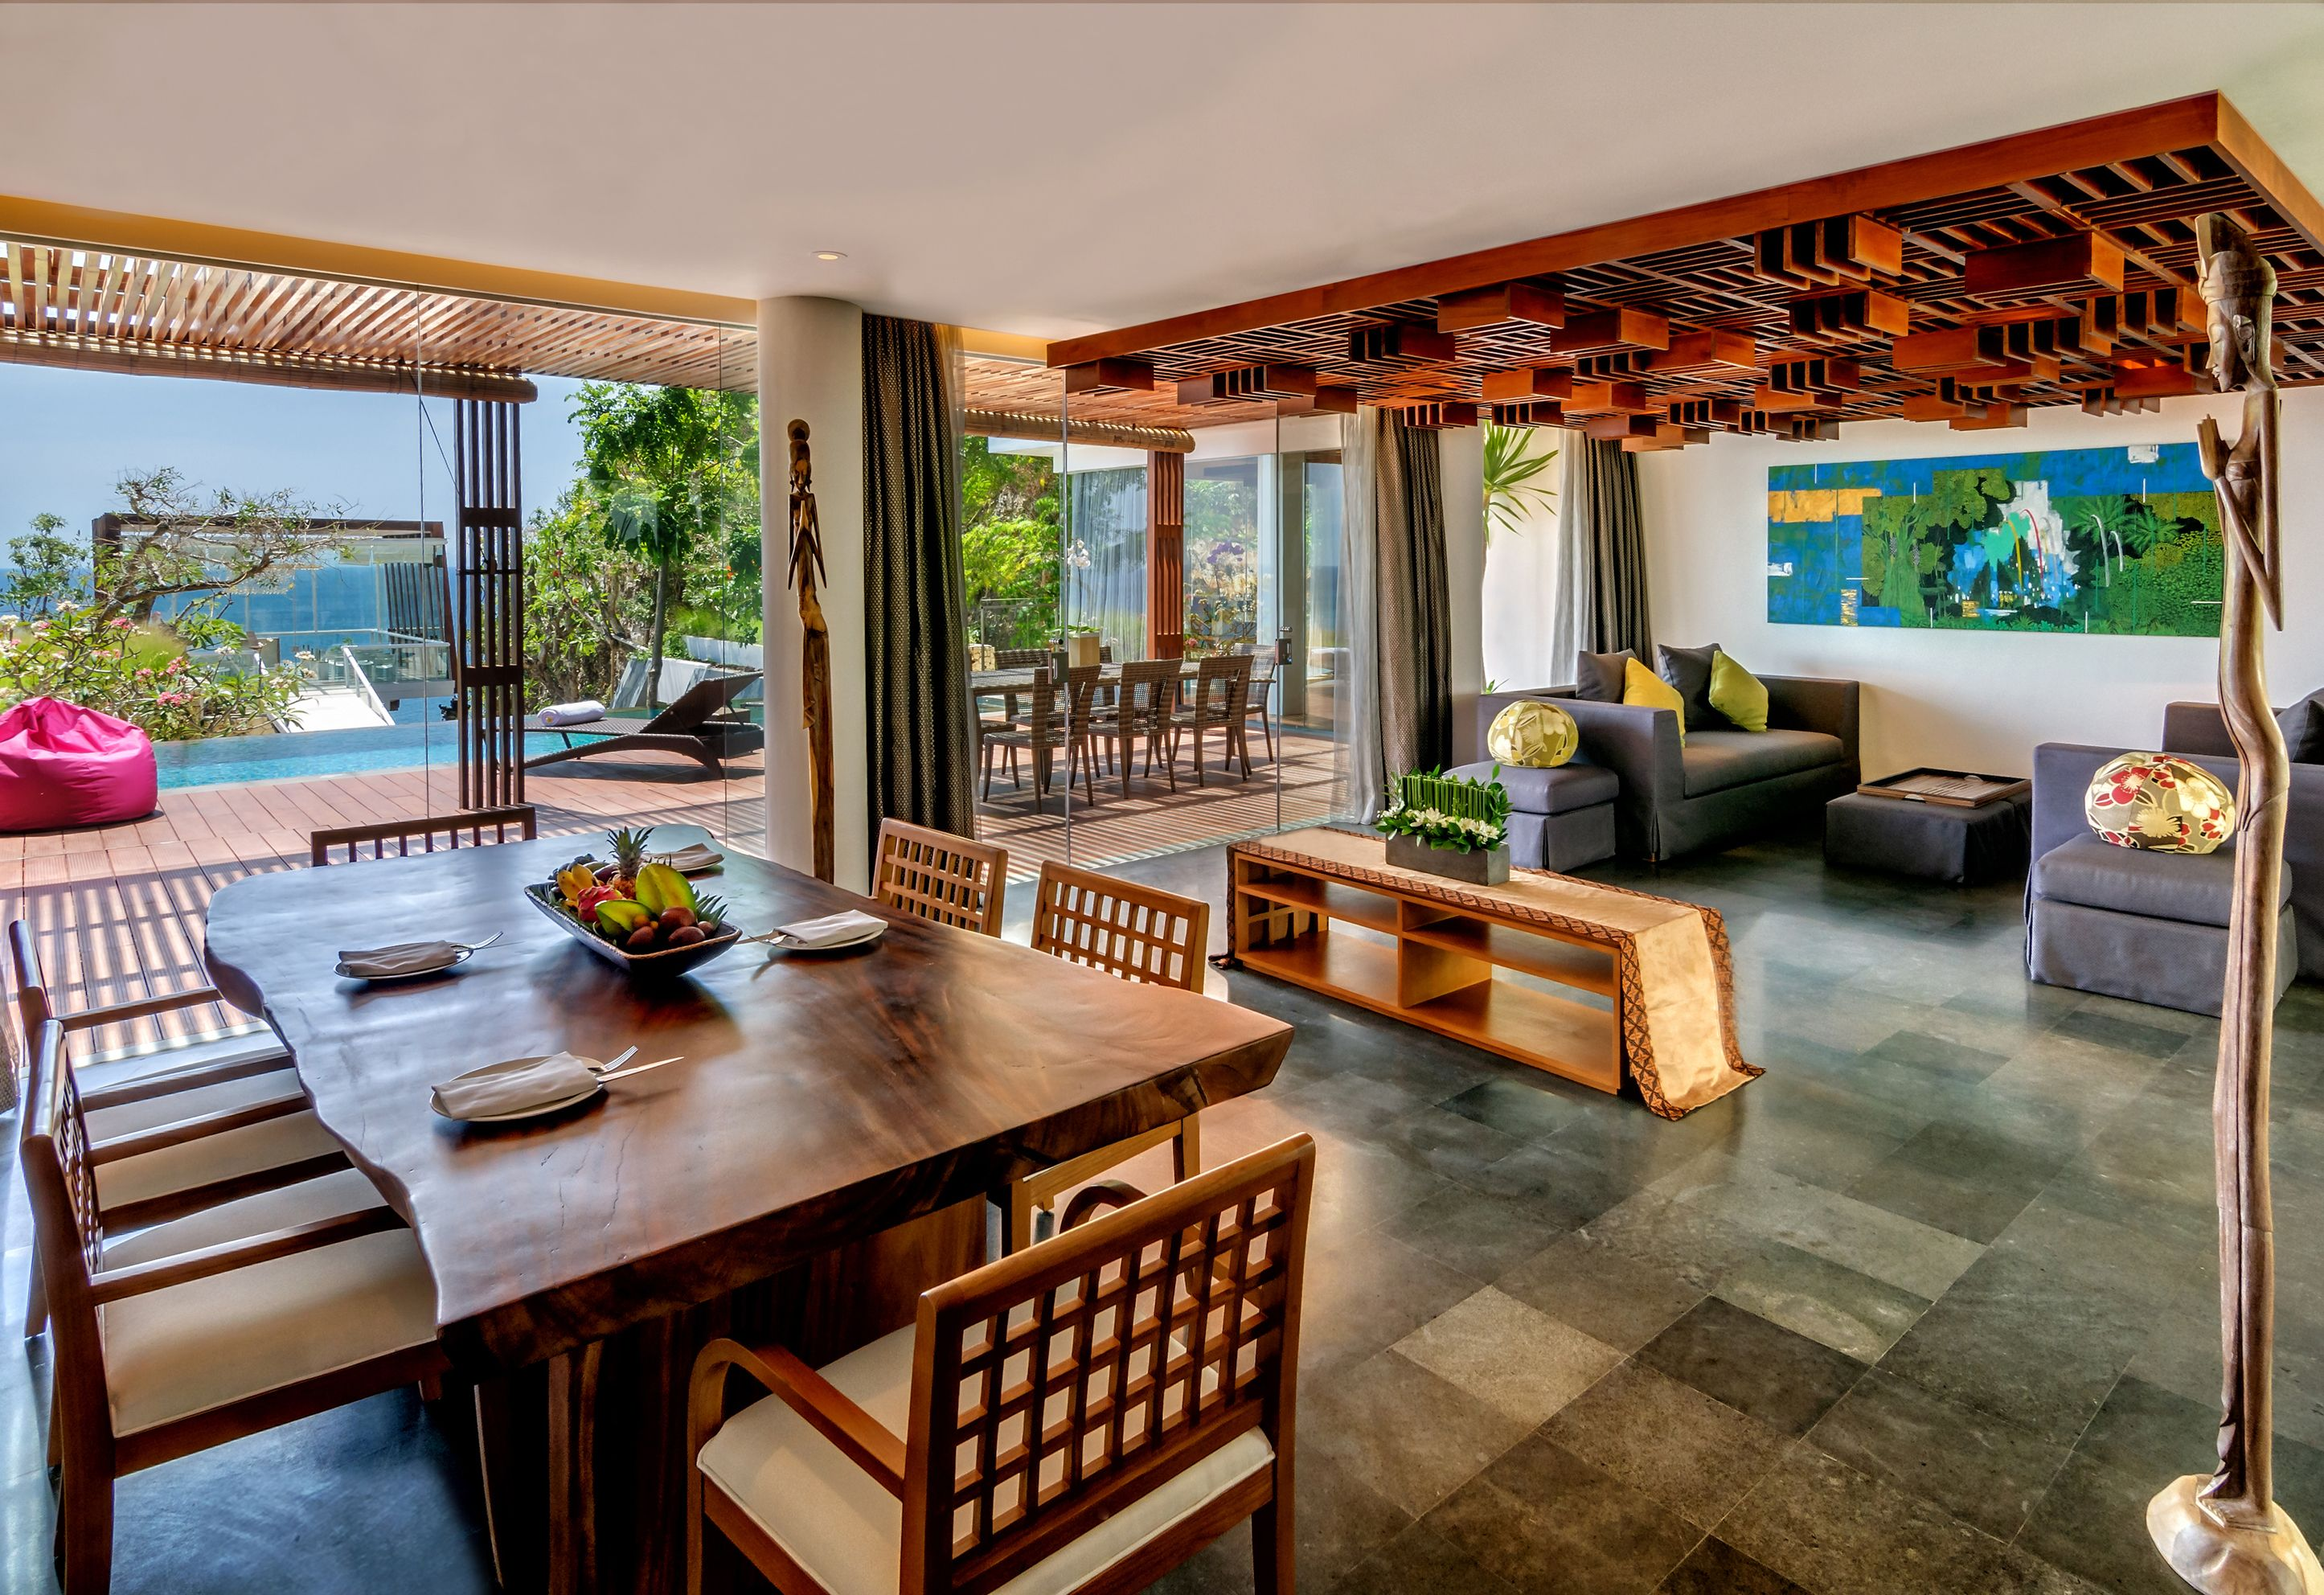 Beach house design. VPool villa dining and living room at